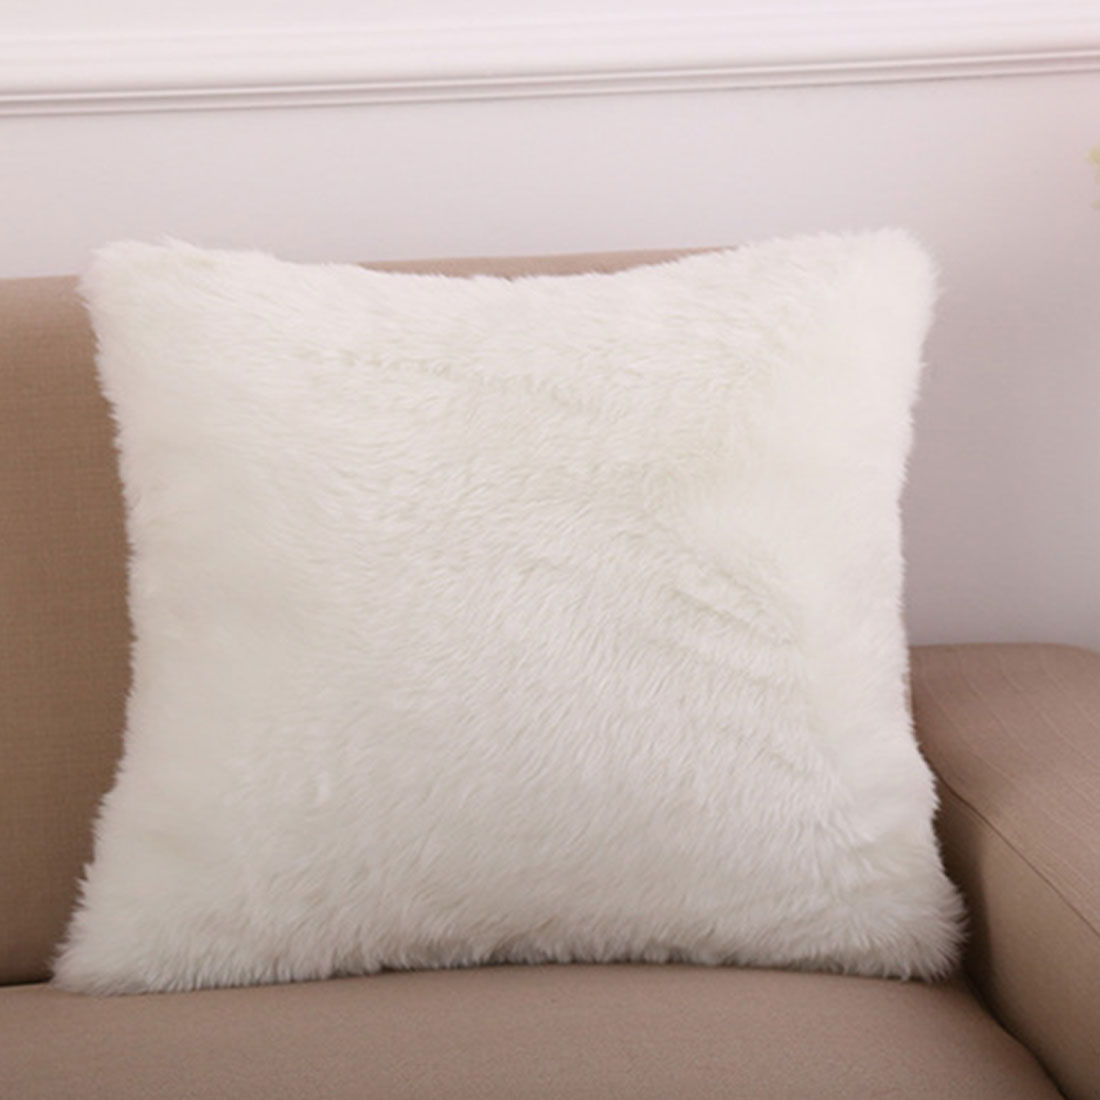 material fur size approx 45 x 45cm coloras the picture shown package content 1 x pillow coverfiller not included - Mongolian Faux Fur Pillow